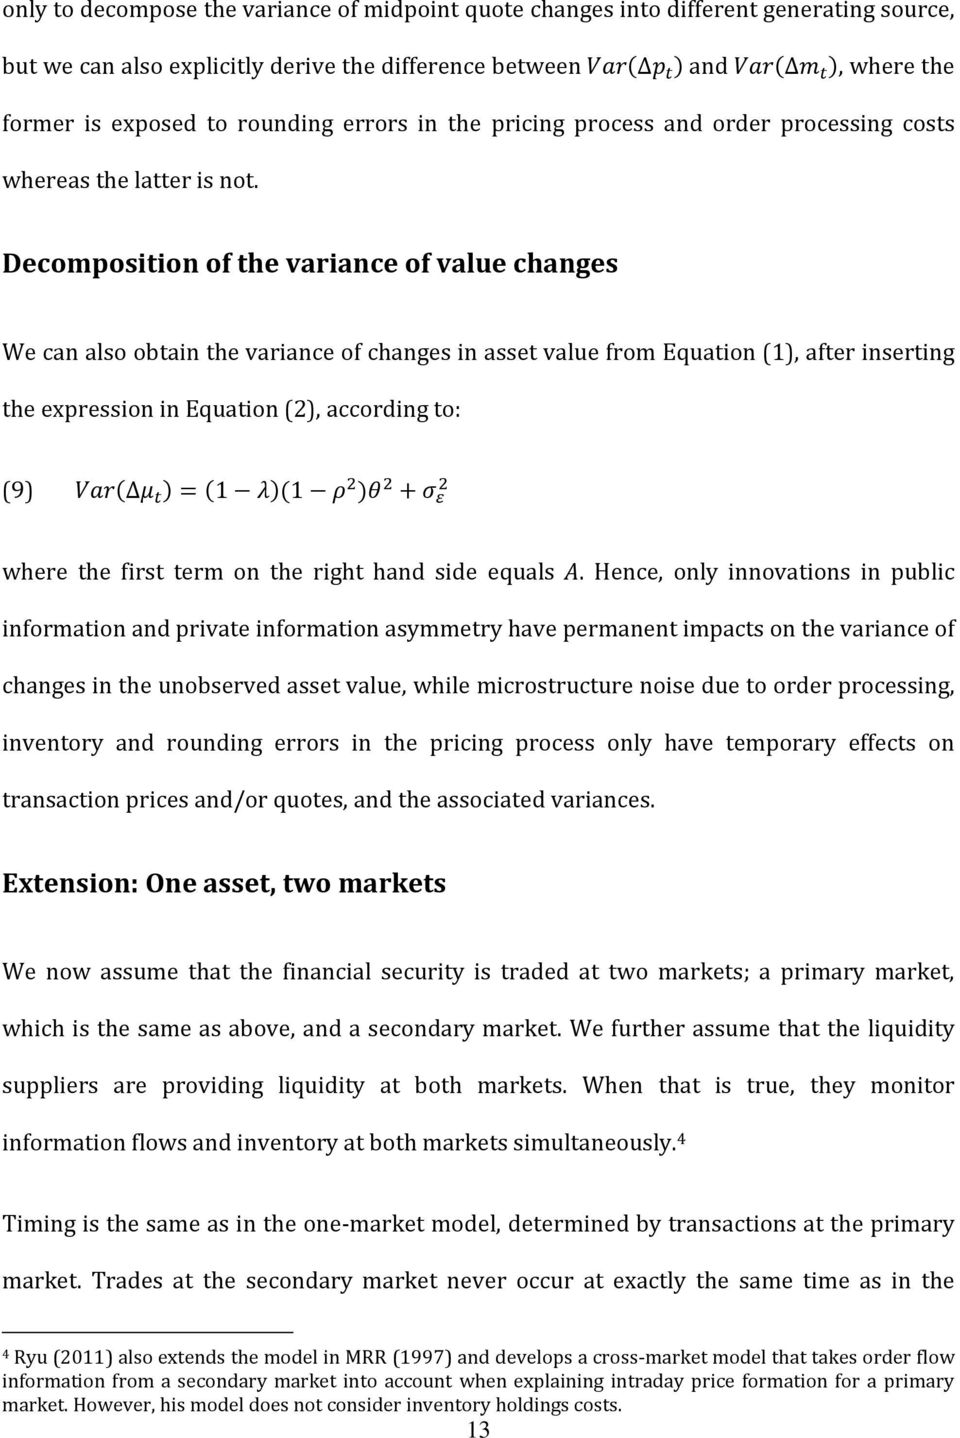 Decomposition of the variance of value changes We can also obtain the variance of changes in asset value from Equation (1), after inserting the expression in Equation (2), according to: (9) ( )=(1